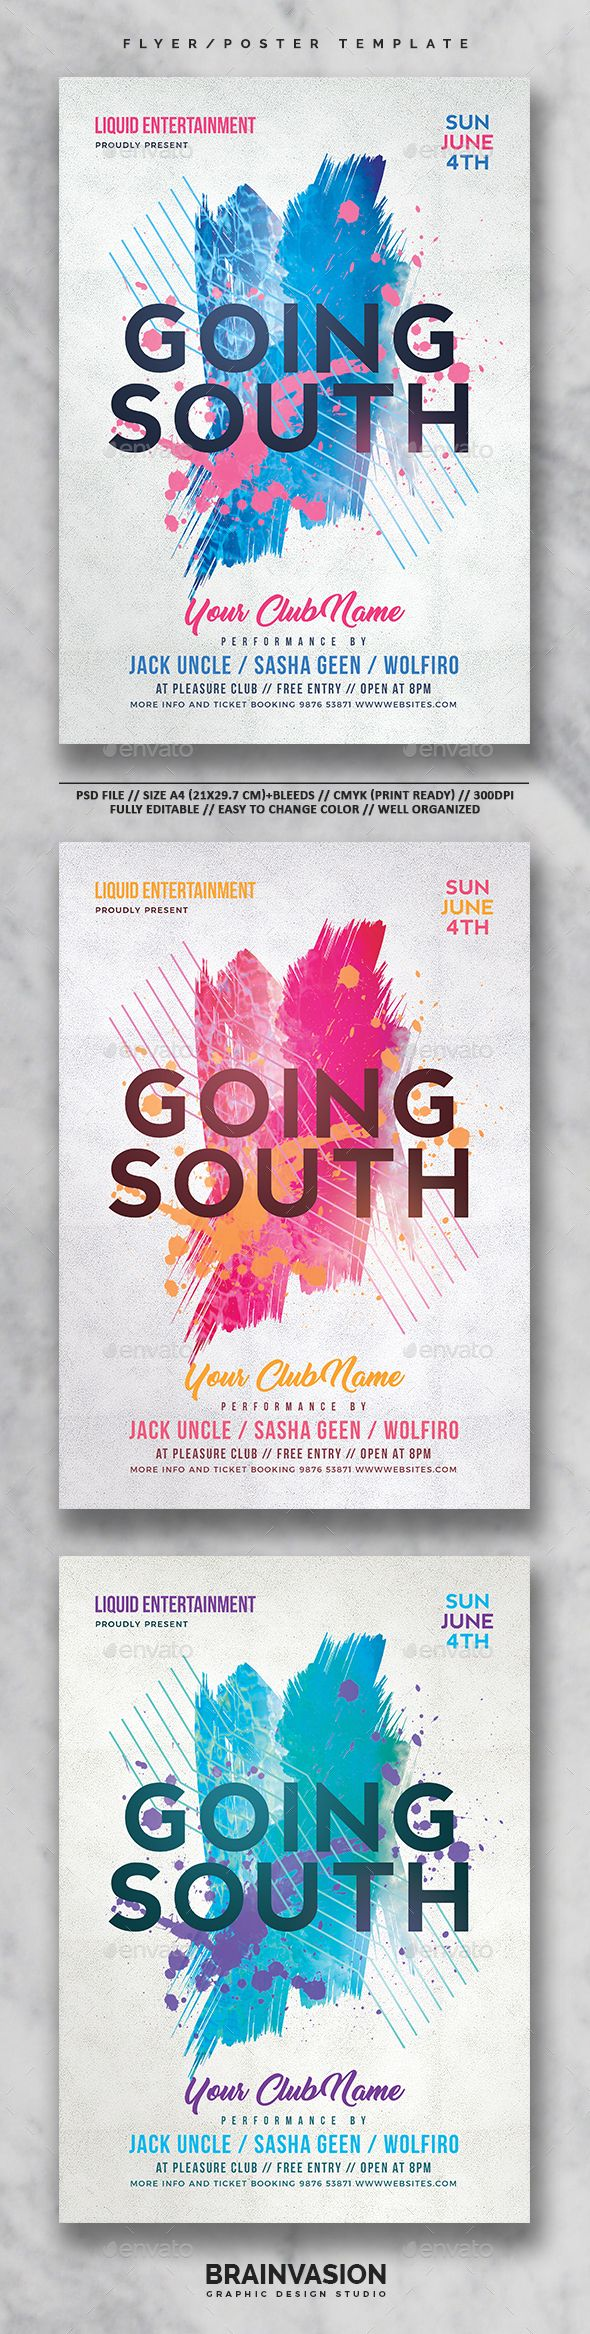 Club Flyer/Poster Template Vol.02 — Photoshop PSD #poster #awesome • Download ➝ https://graphicriver.net/item/club-flyerposter-template-vol02/19635479?ref=pxcr